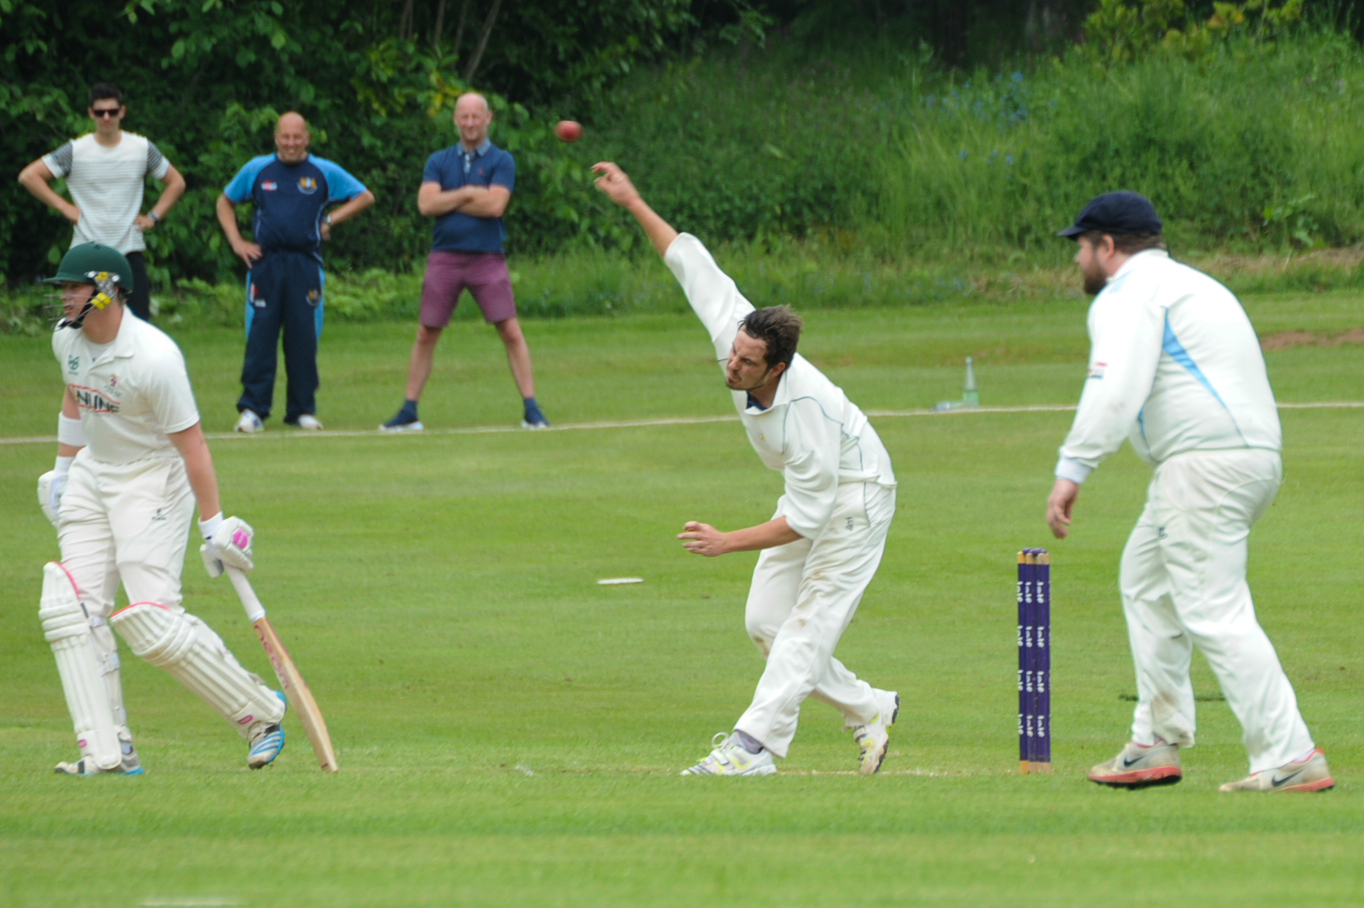 Brockhampton skipper Nick Powell led the way with the bat and ball for his side